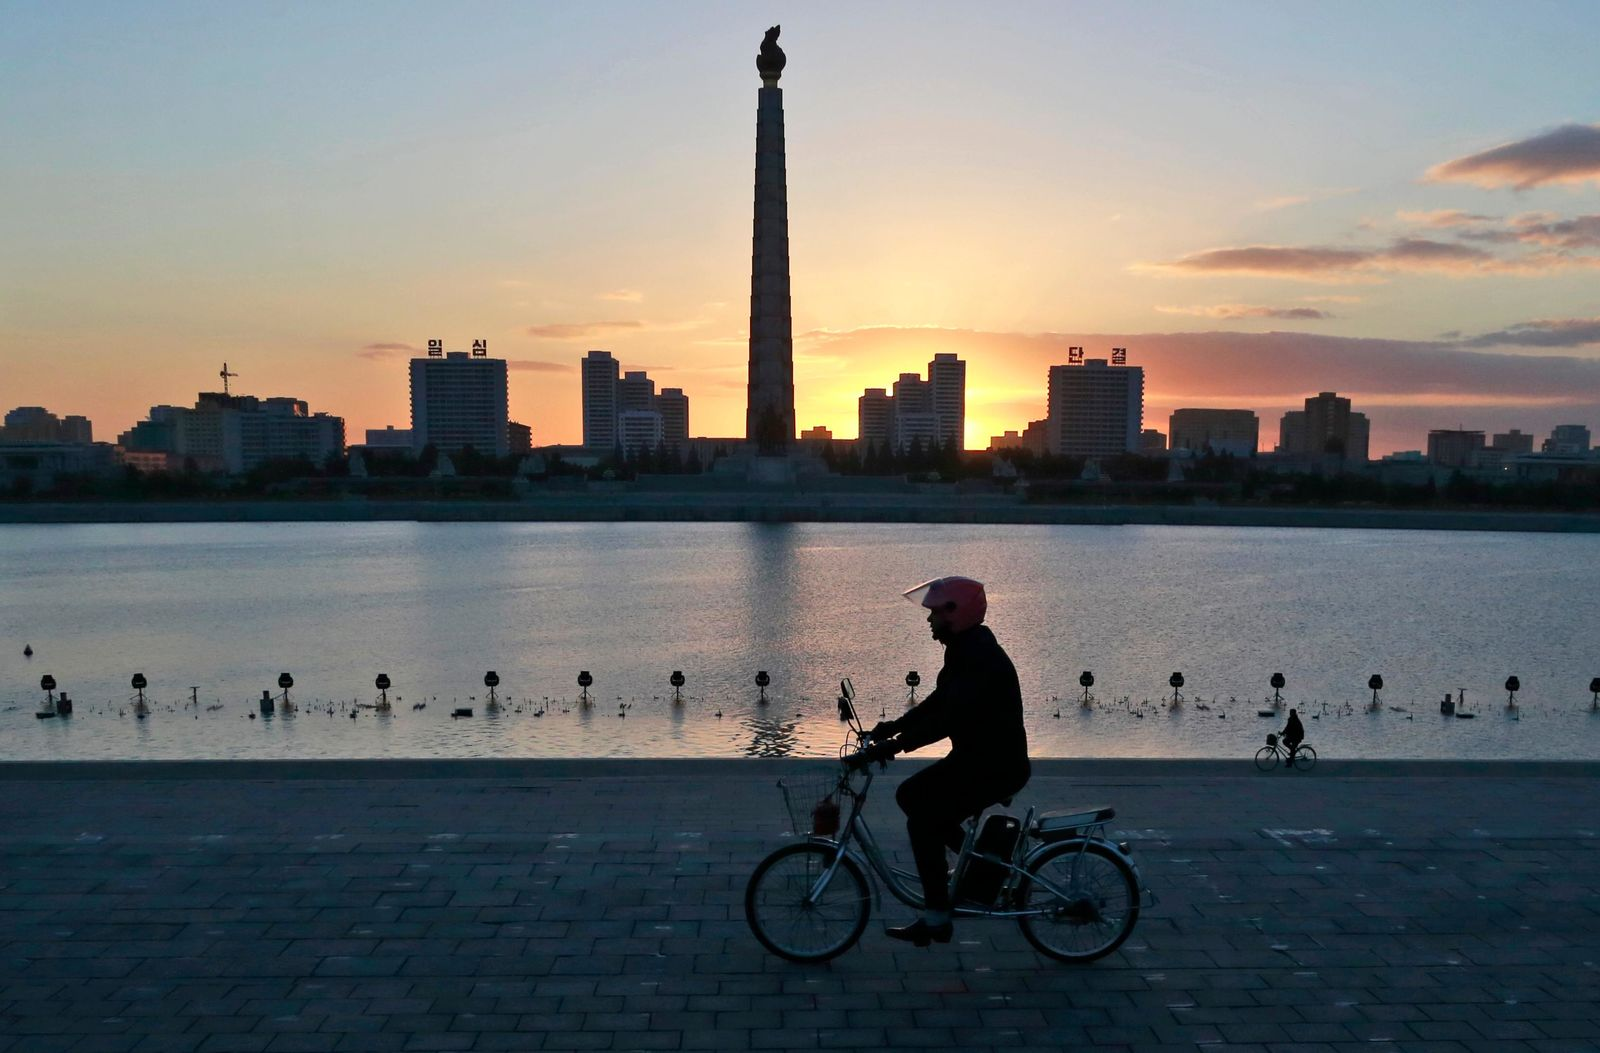 FILE - In this Oct. 27, 2018 file photo, a man rides his electric bike as the Tower of the Juche Idea is silhouetted agains the sunrise in Pyongyang, North Korea. As Chinese President Xi Jinping makes an official trip June 20, 2019 to{ } (AP Photo/Dita Alangkara, File)